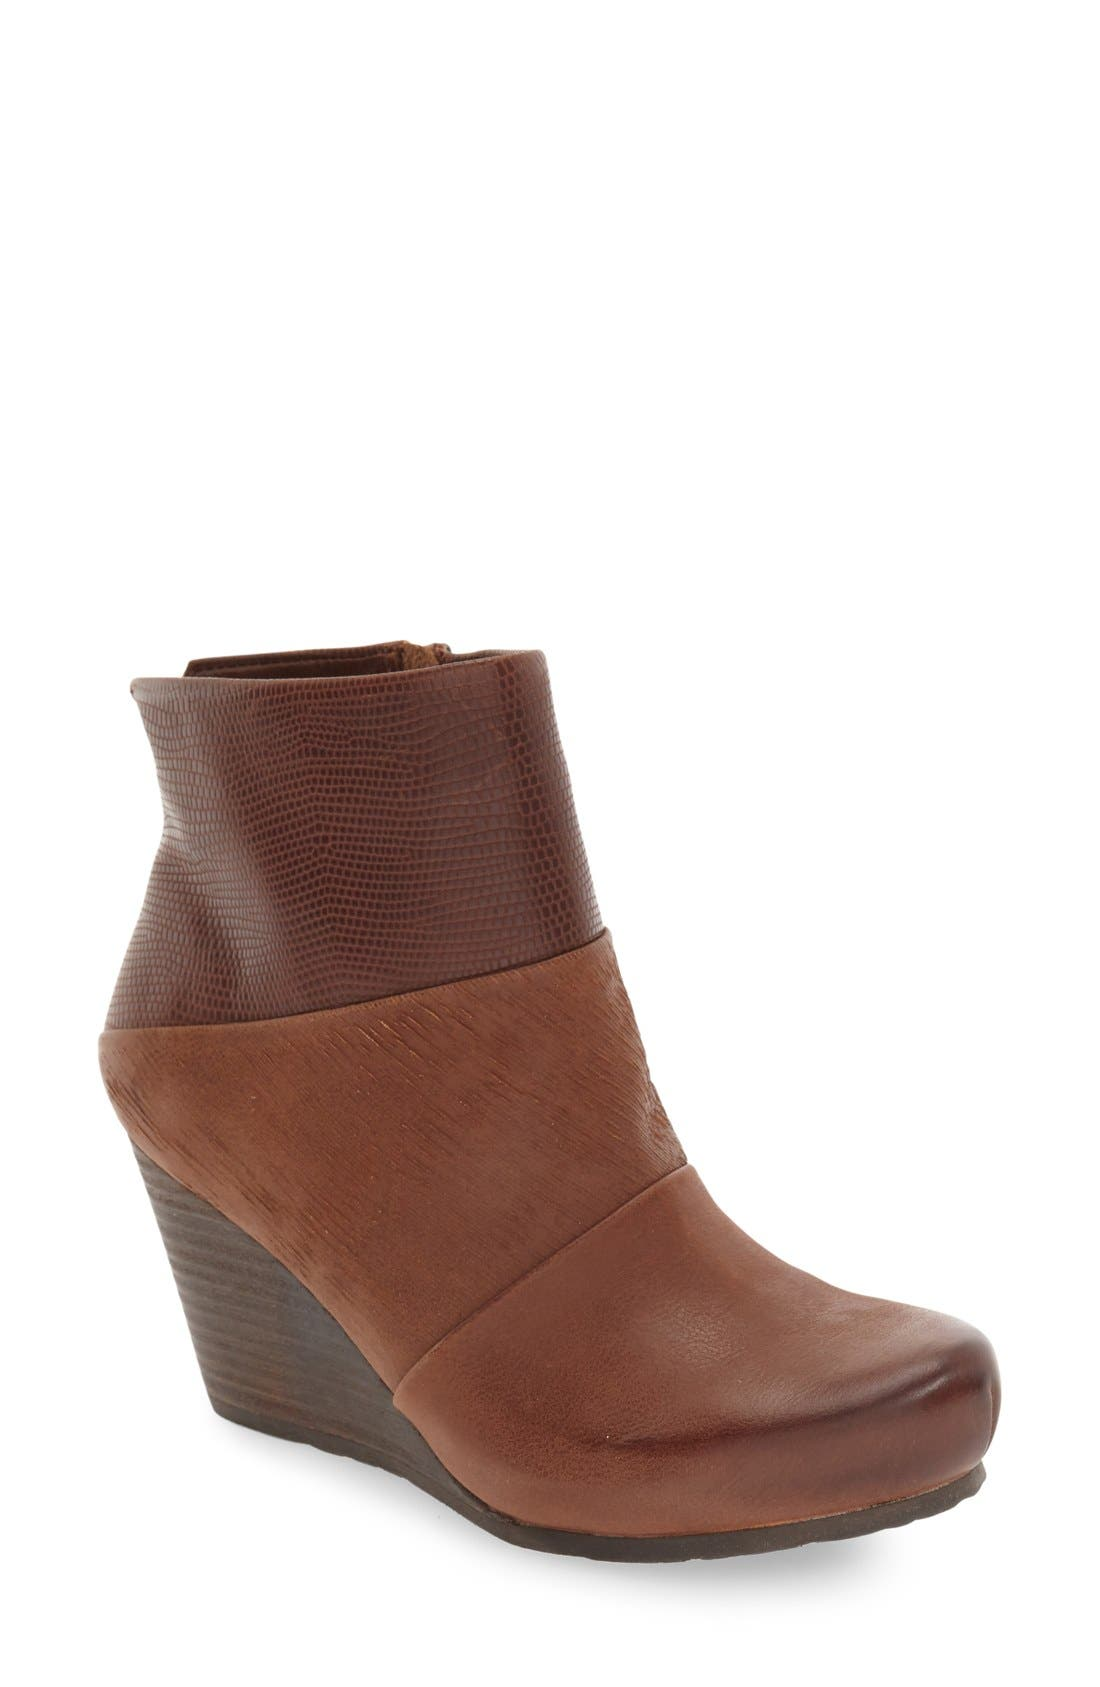 'Dharma' Wedge Bootie,                             Main thumbnail 1, color,                             Acorn Leather